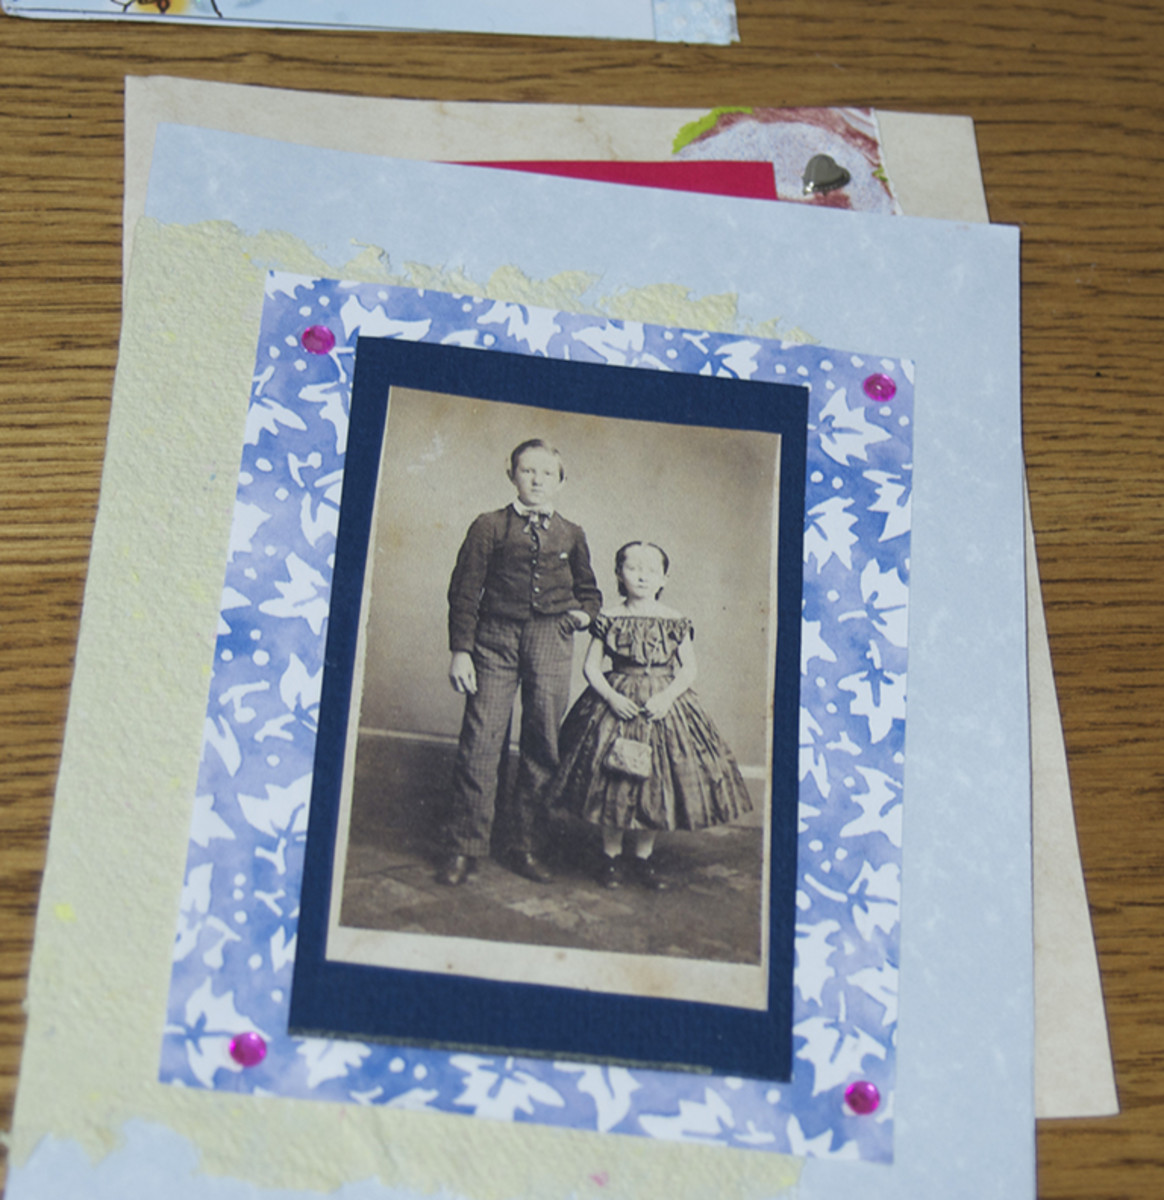 Use old photos (copies) and jewels with colored paper.